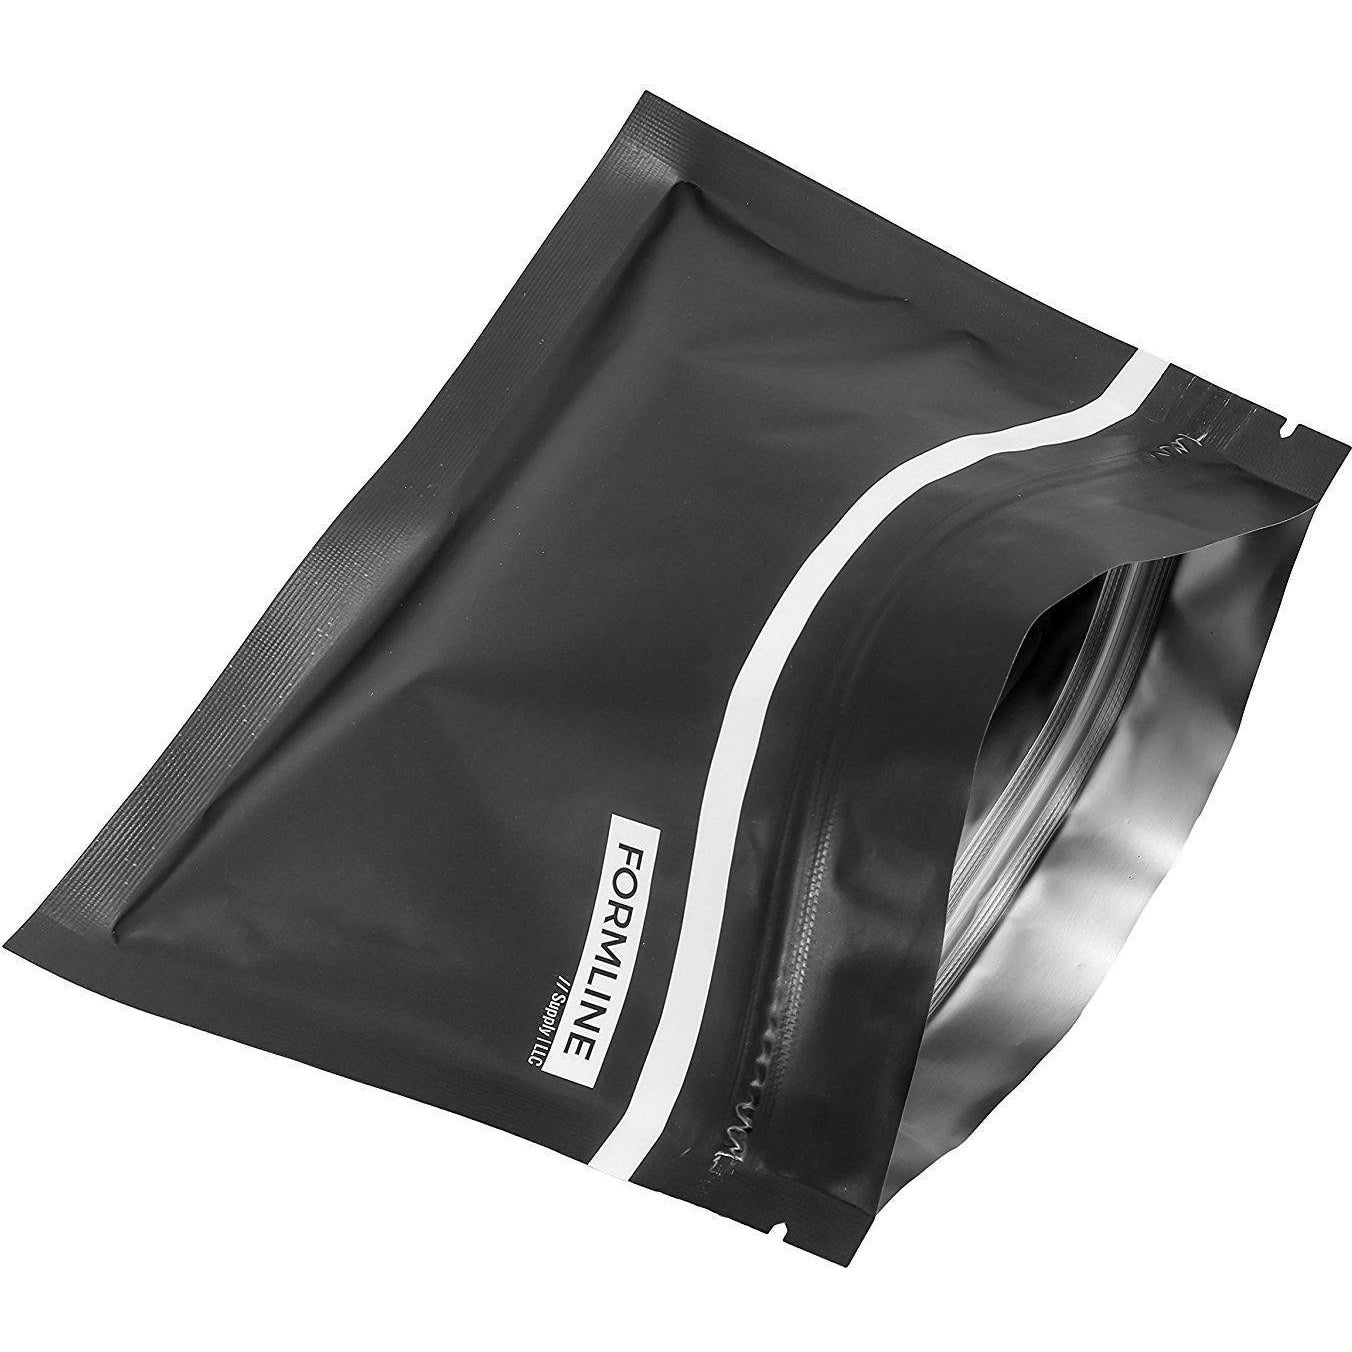 FORMLINE Smell Proof Bags (20 Pack) - Made In USA